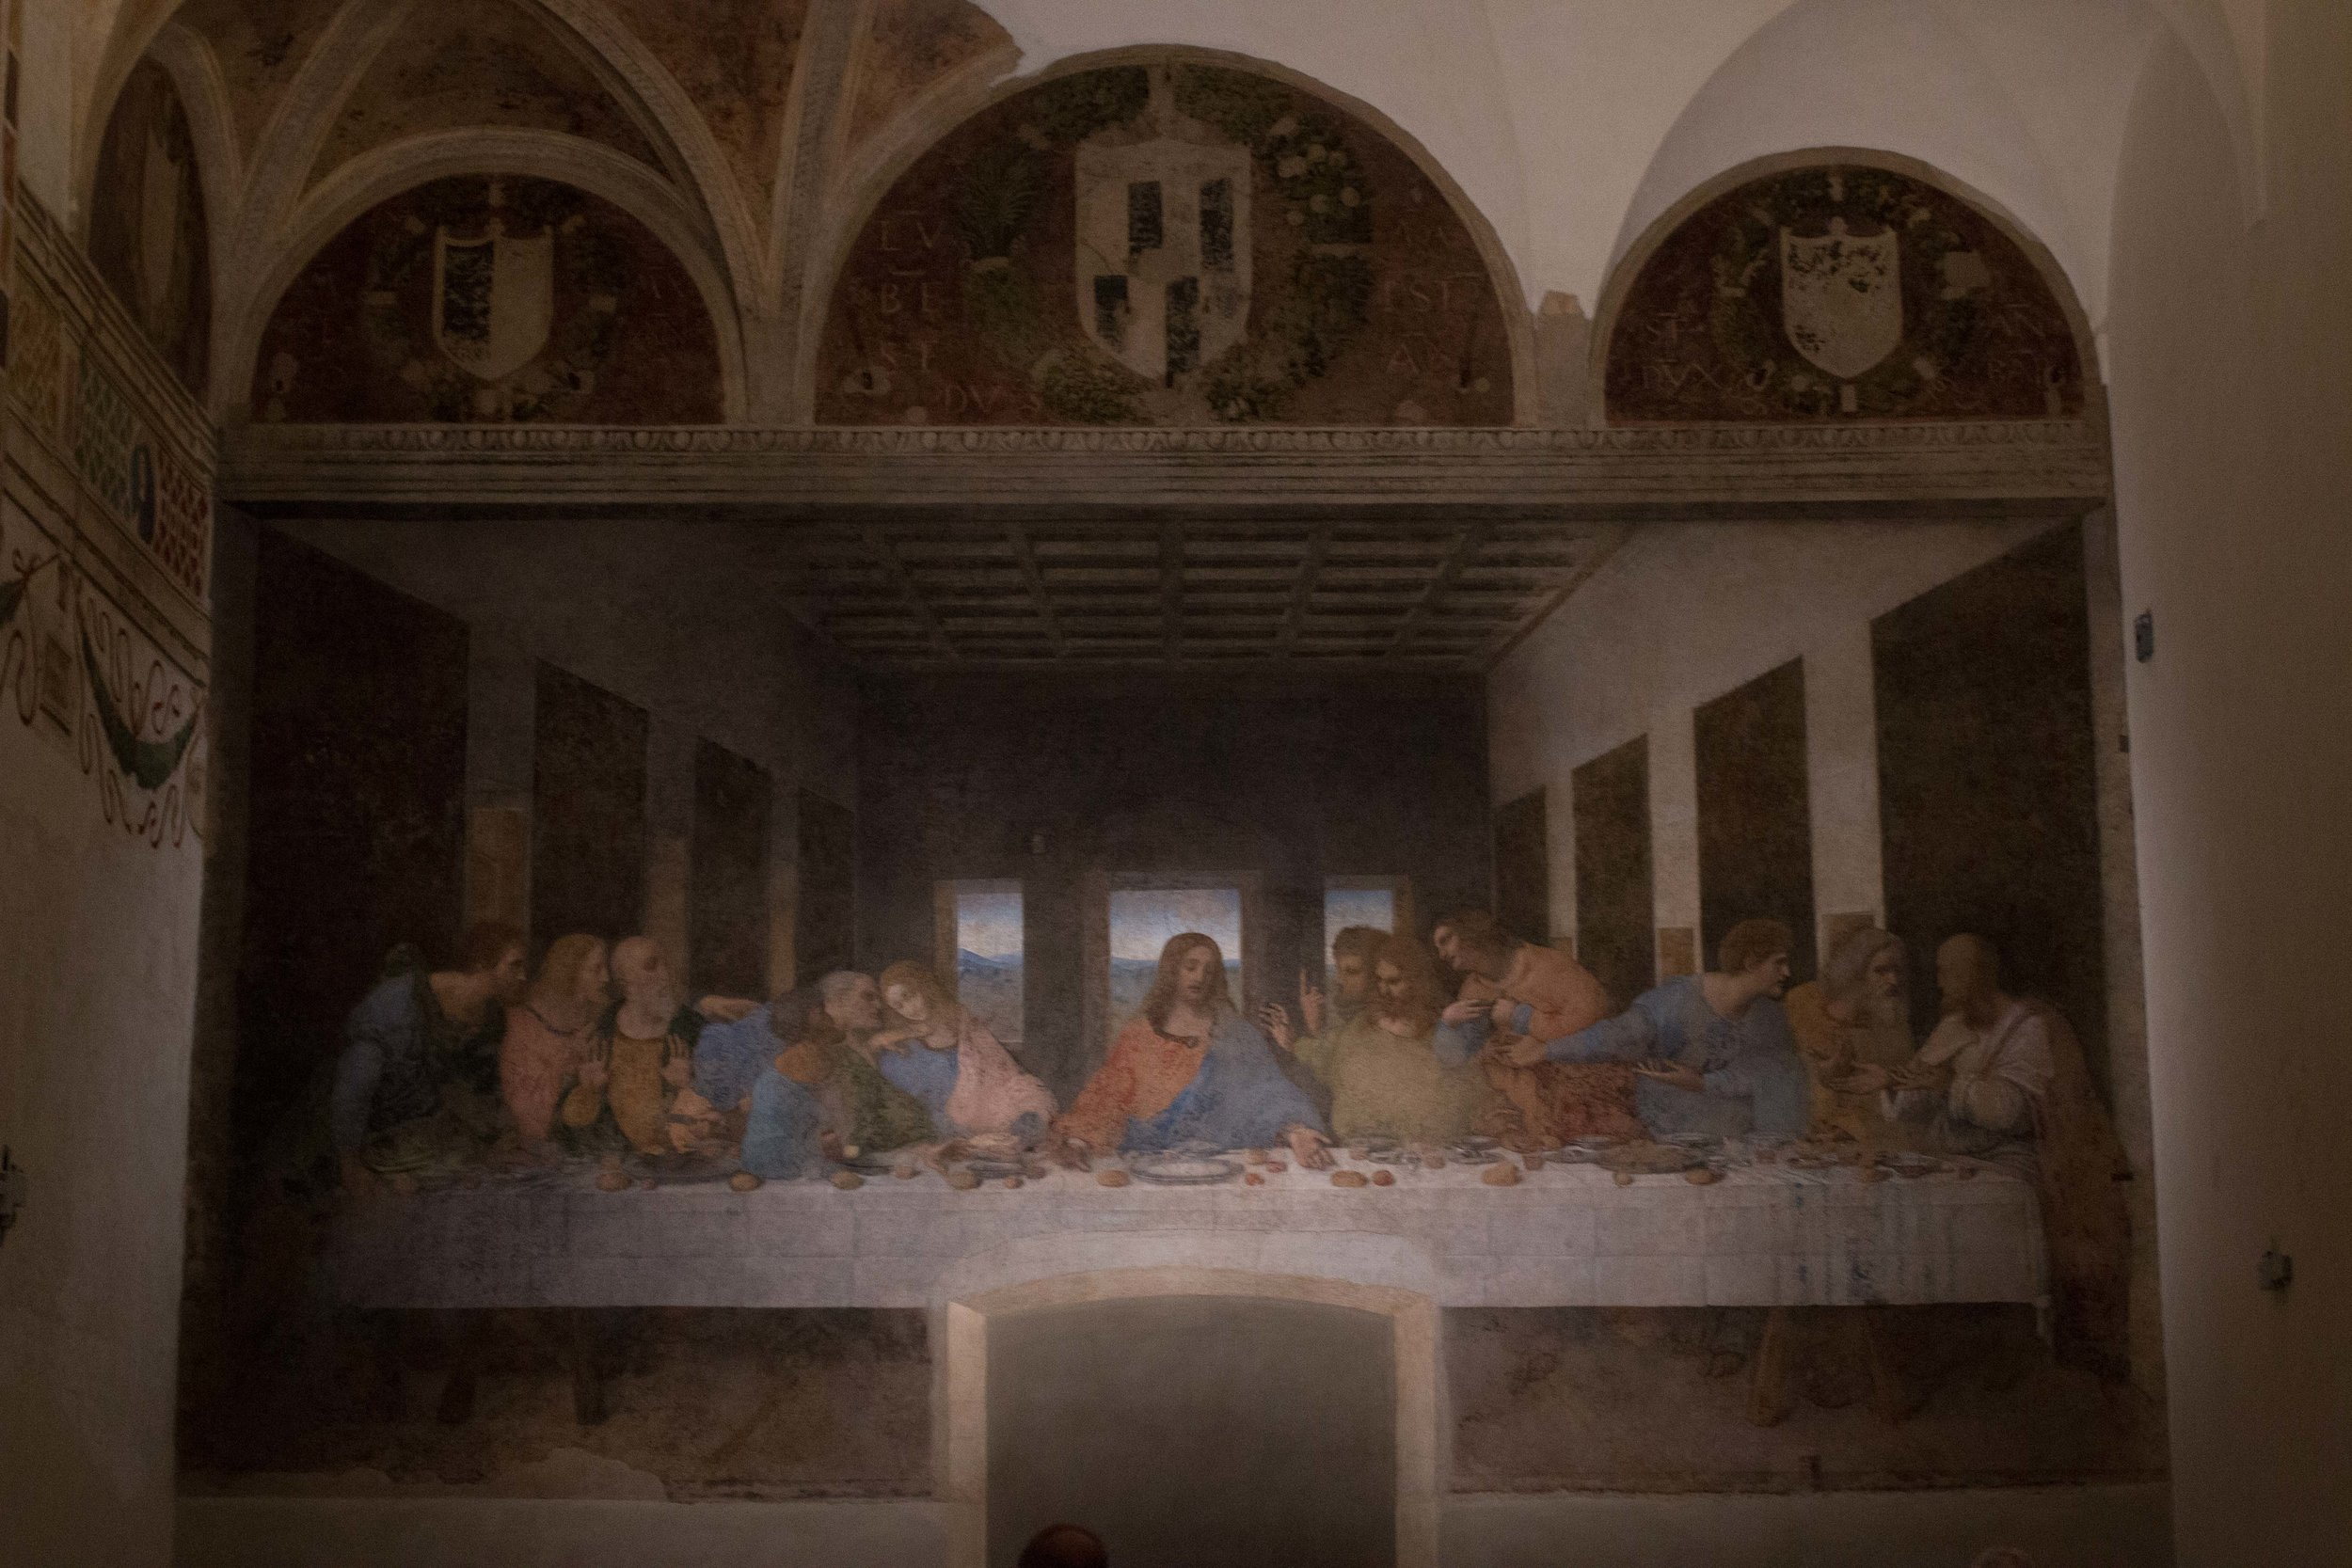 The Last Supper, Leonardo DaVinci